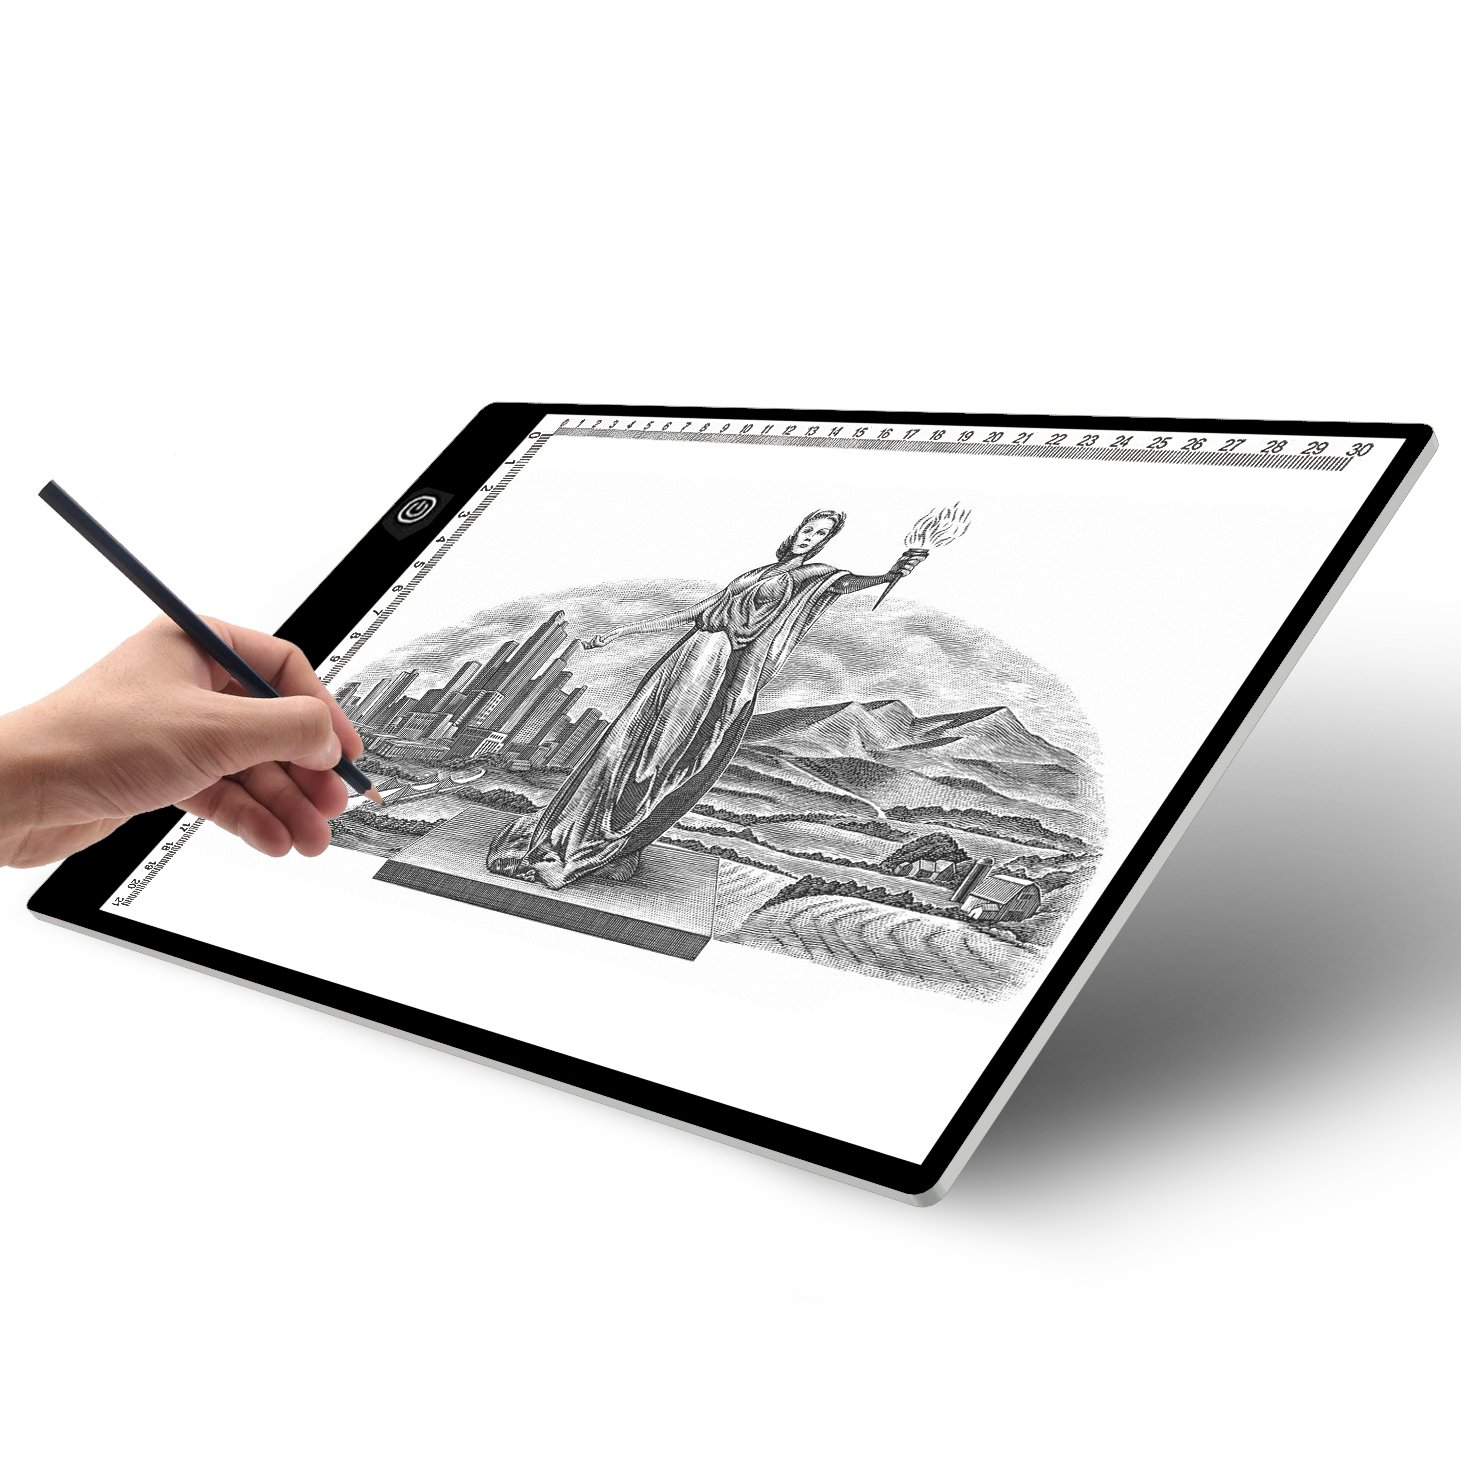 〖Deluxe Version〗A4 Light Box Tracer with Scale |Ultra-Thin USB Powered Portable Dimmable Brightness LED Artcraft Tracing Light Pad | Light Box for Artists Drawing Sketching Animation Designing Luditek 4336950958